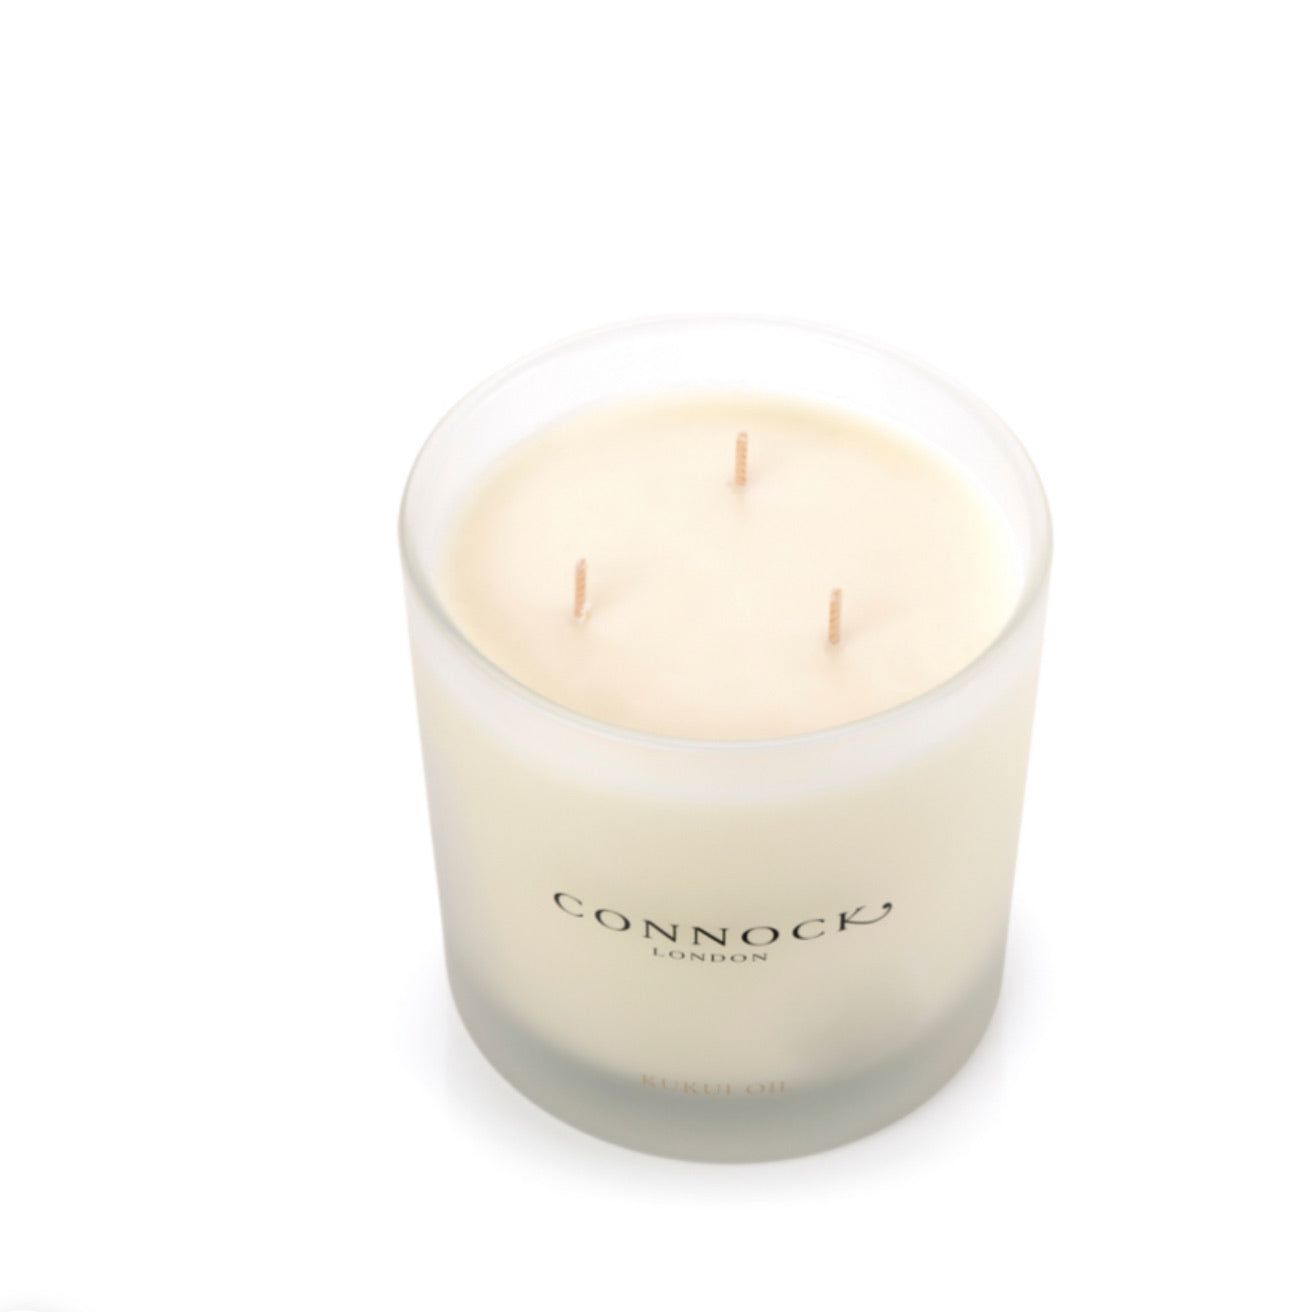 Connock Kukui Oil 3 Wick Candle